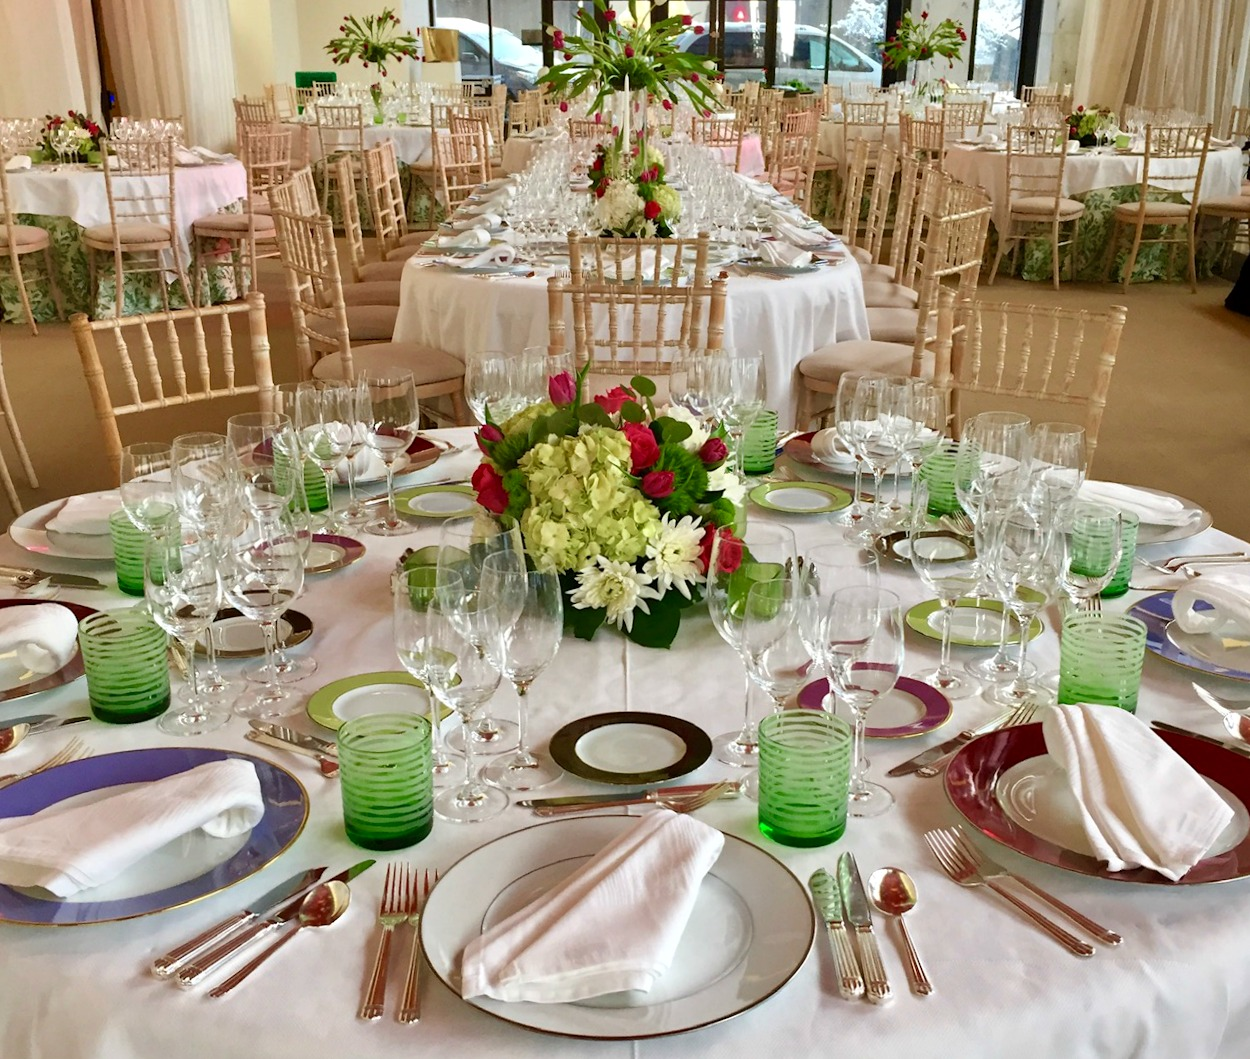 TABLE RENAISSANCE GALA DINNER